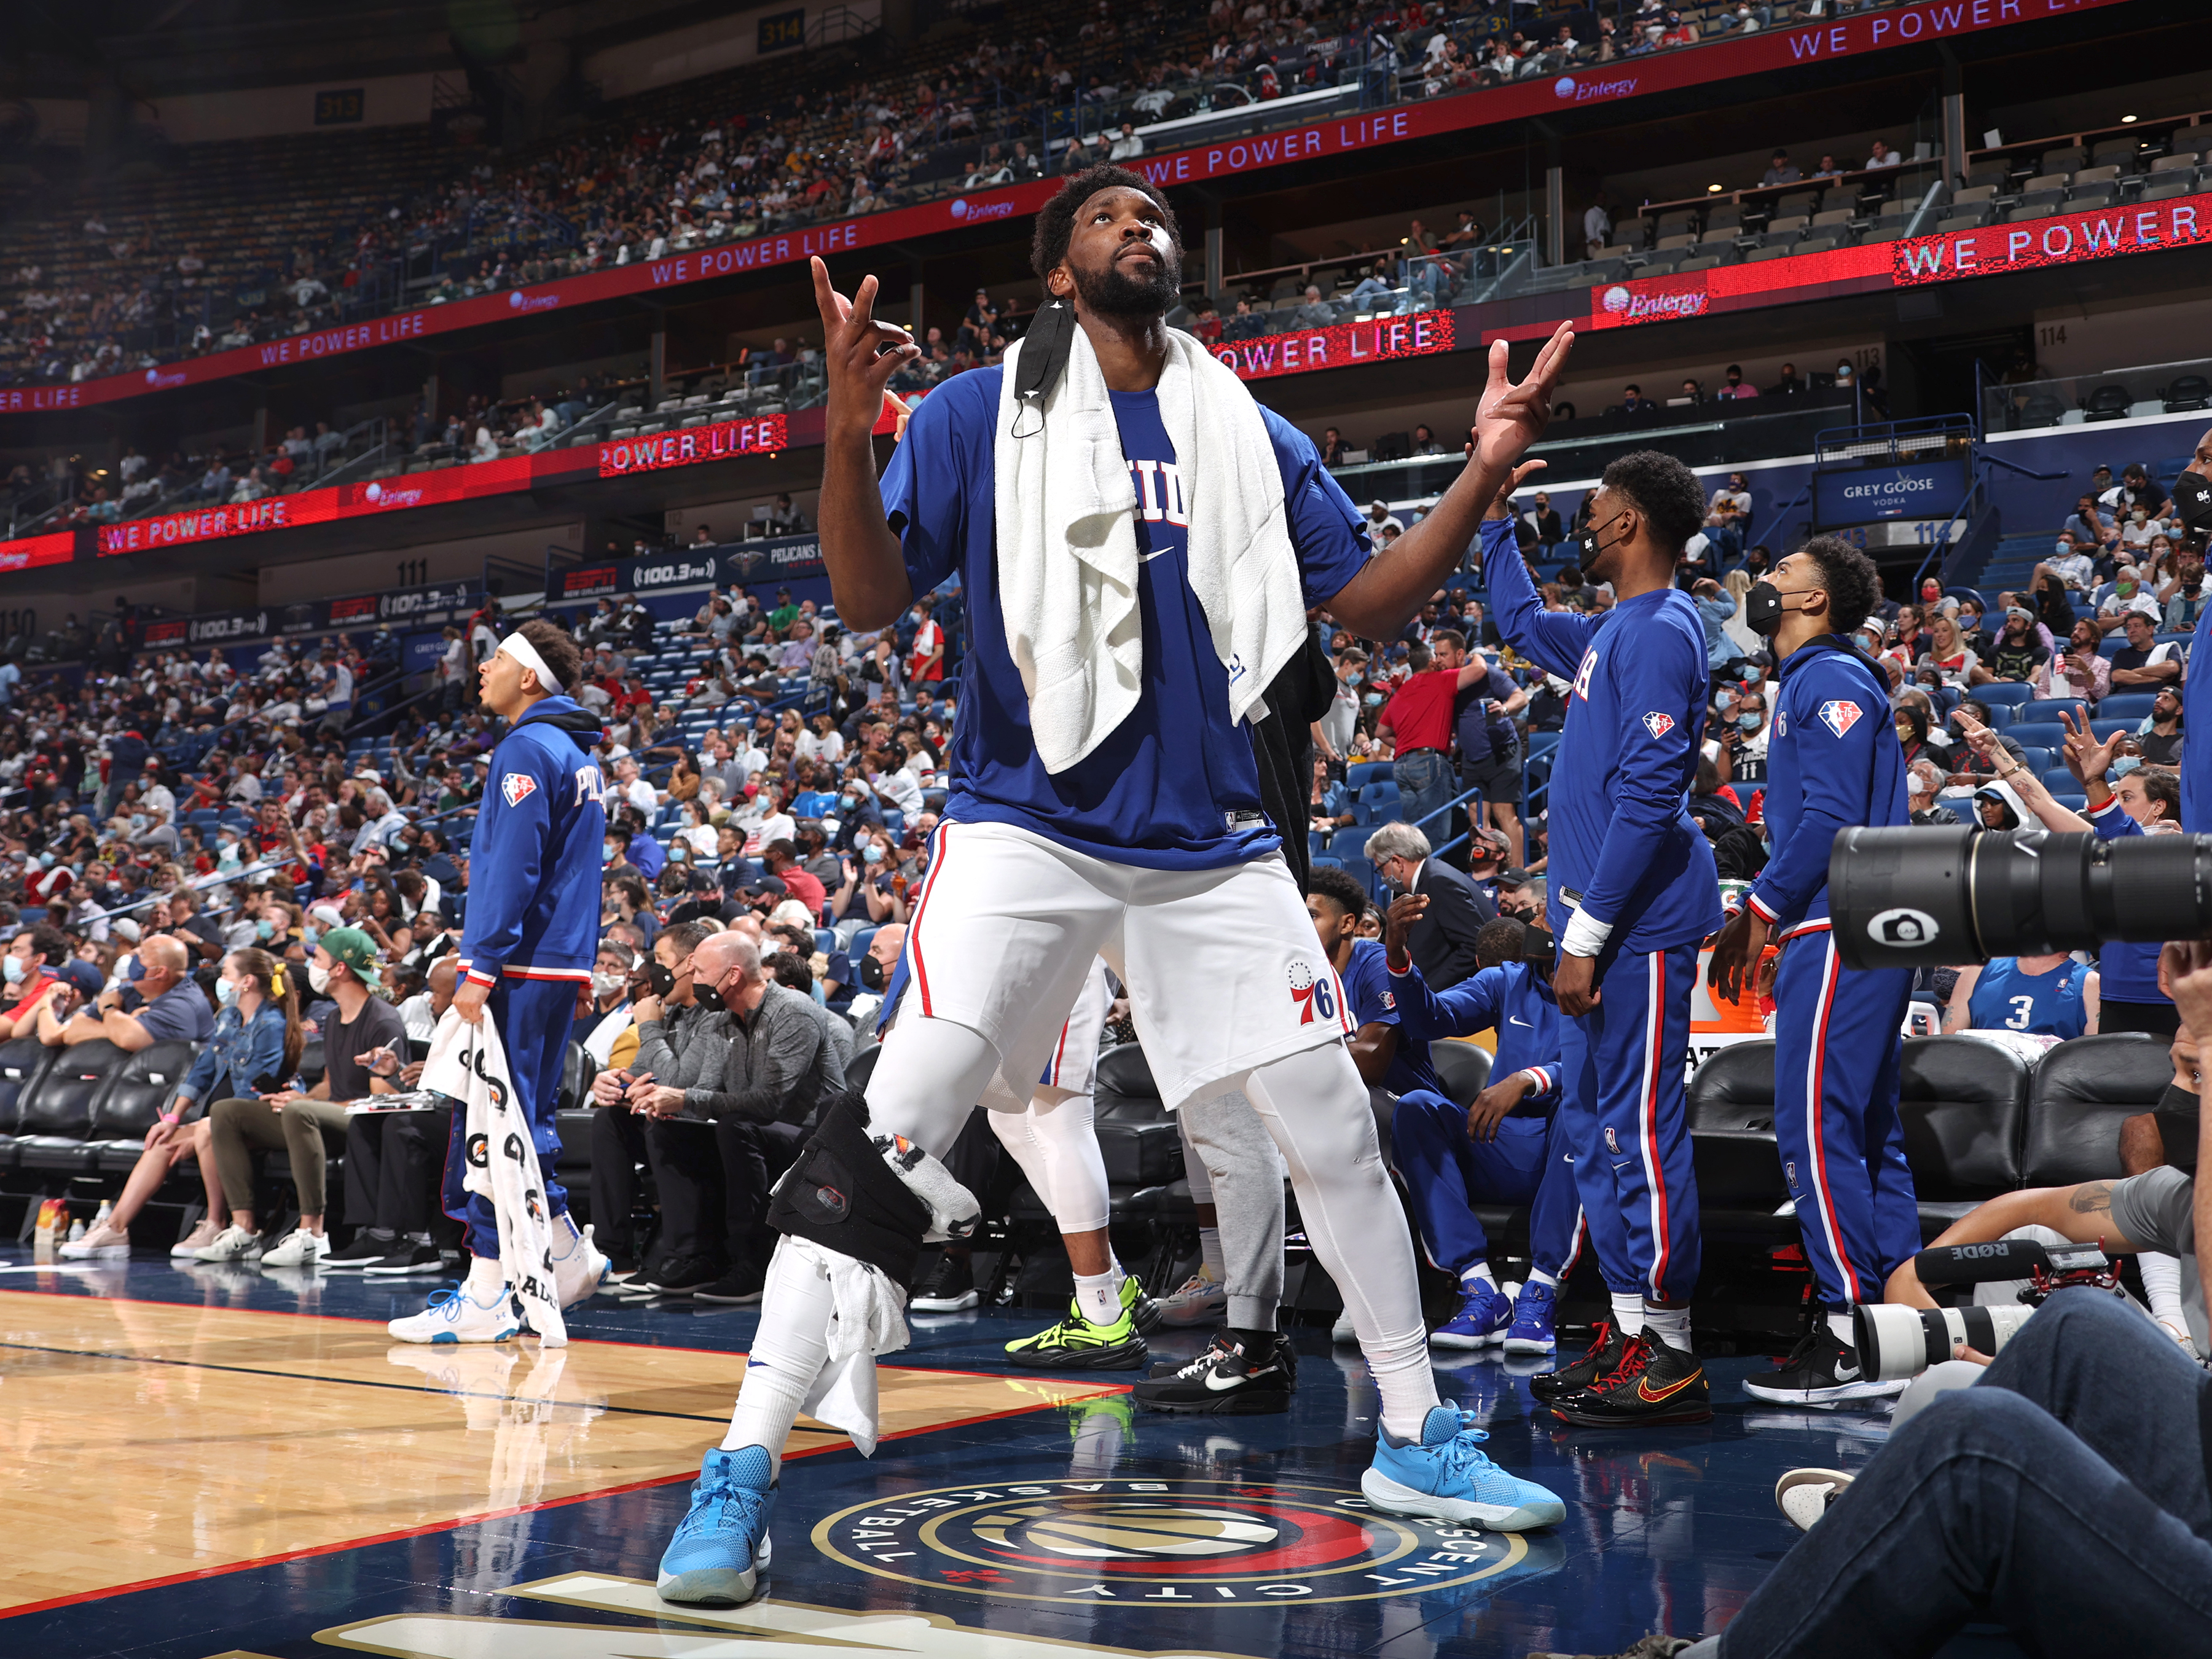 Joel Embiid #21 of the Philadelphia 76ers celebrates during the game against the New Orleans Pelicans on October 20, 2021 at the Smoothie King Center in New Orleans, Louisiana.